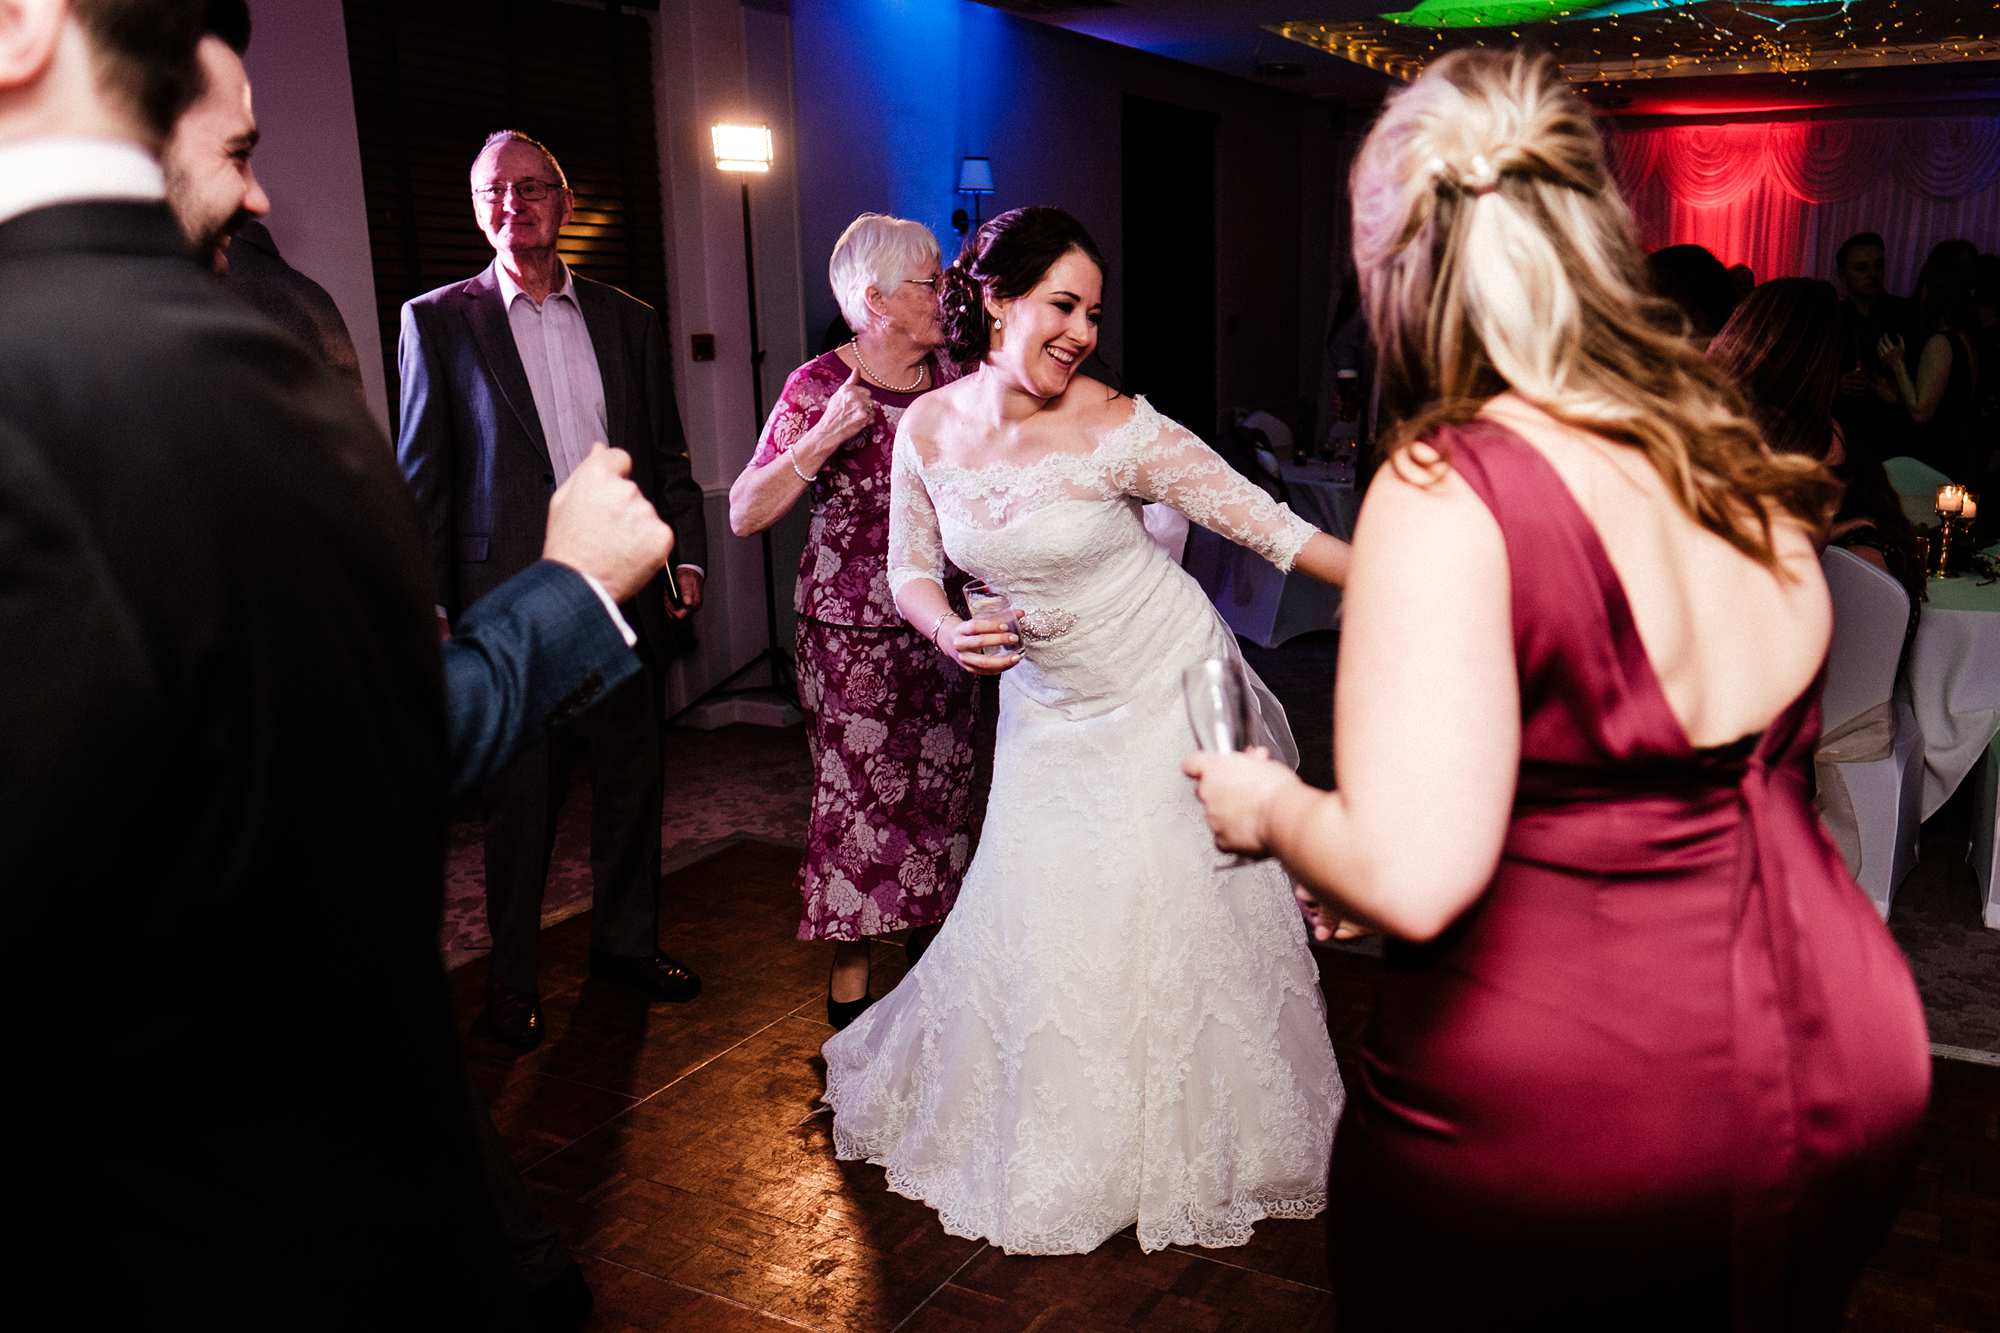 Evening party at a February wedding at Highfield Park in Hampshire